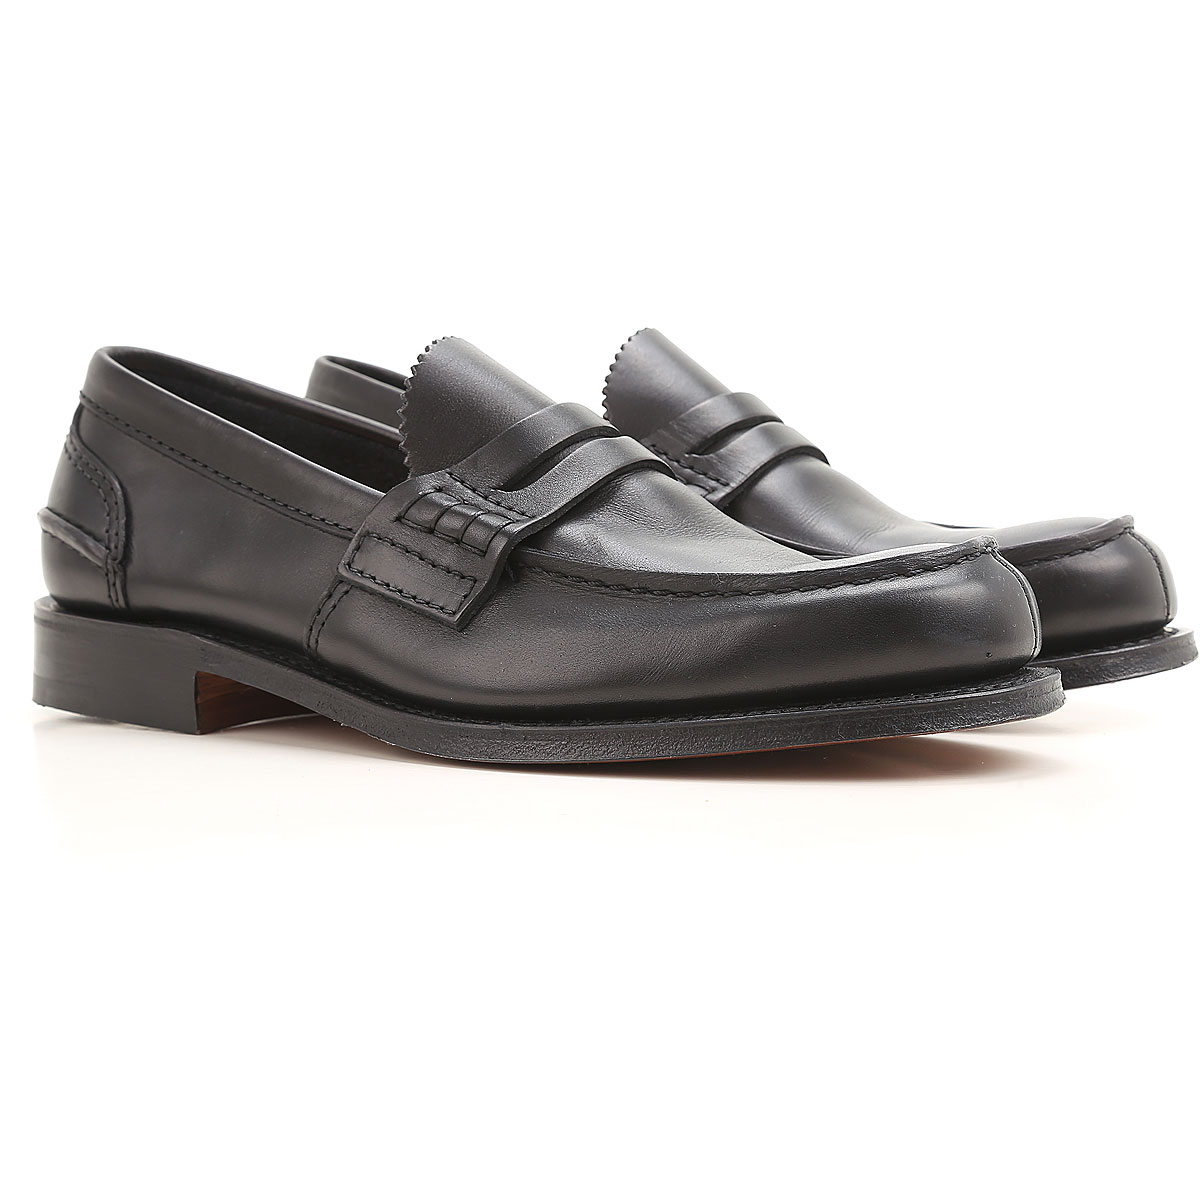 Image of Church's Loafers for Men, Black, Leather, 2017, 10 10.5 11 7 7.5 8 8.5 9 9.5